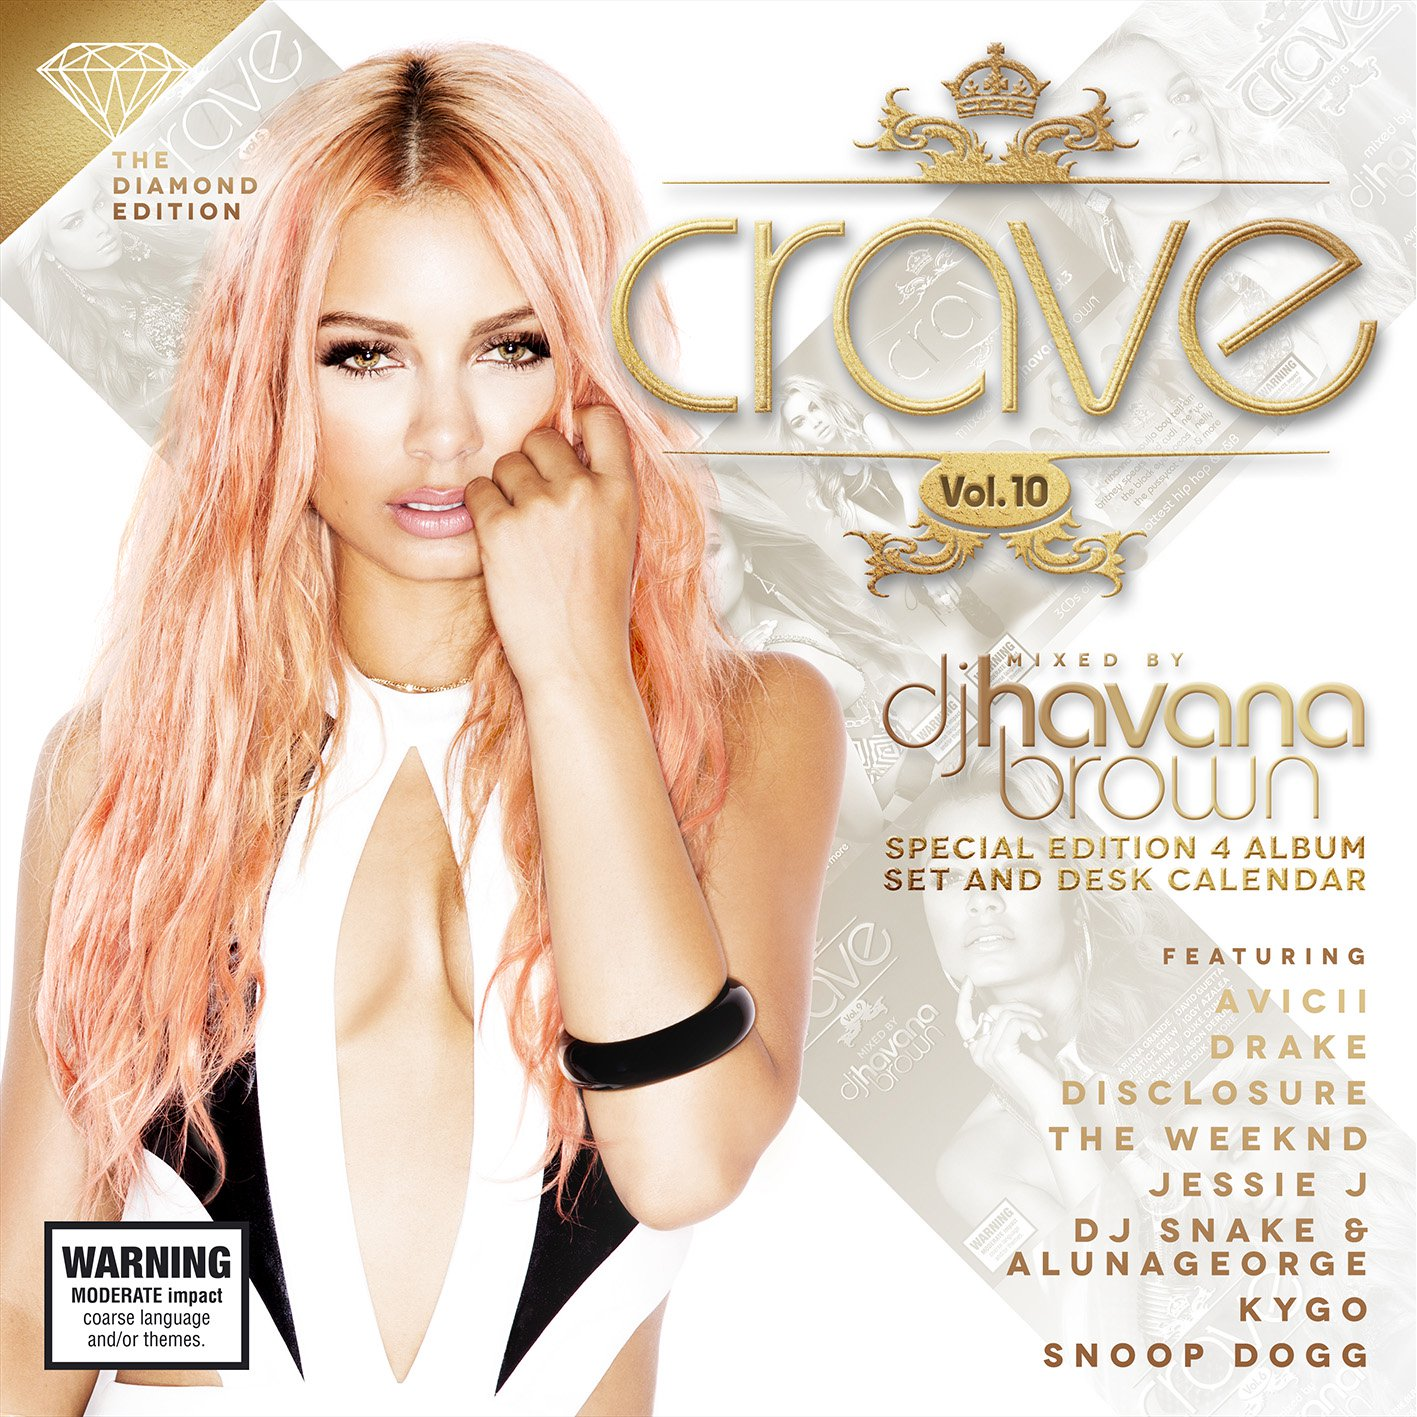 Havana Brown Crave Vol.10 The Diamond Edition Cover by Los Angeles Fashion Photographer James Hickey